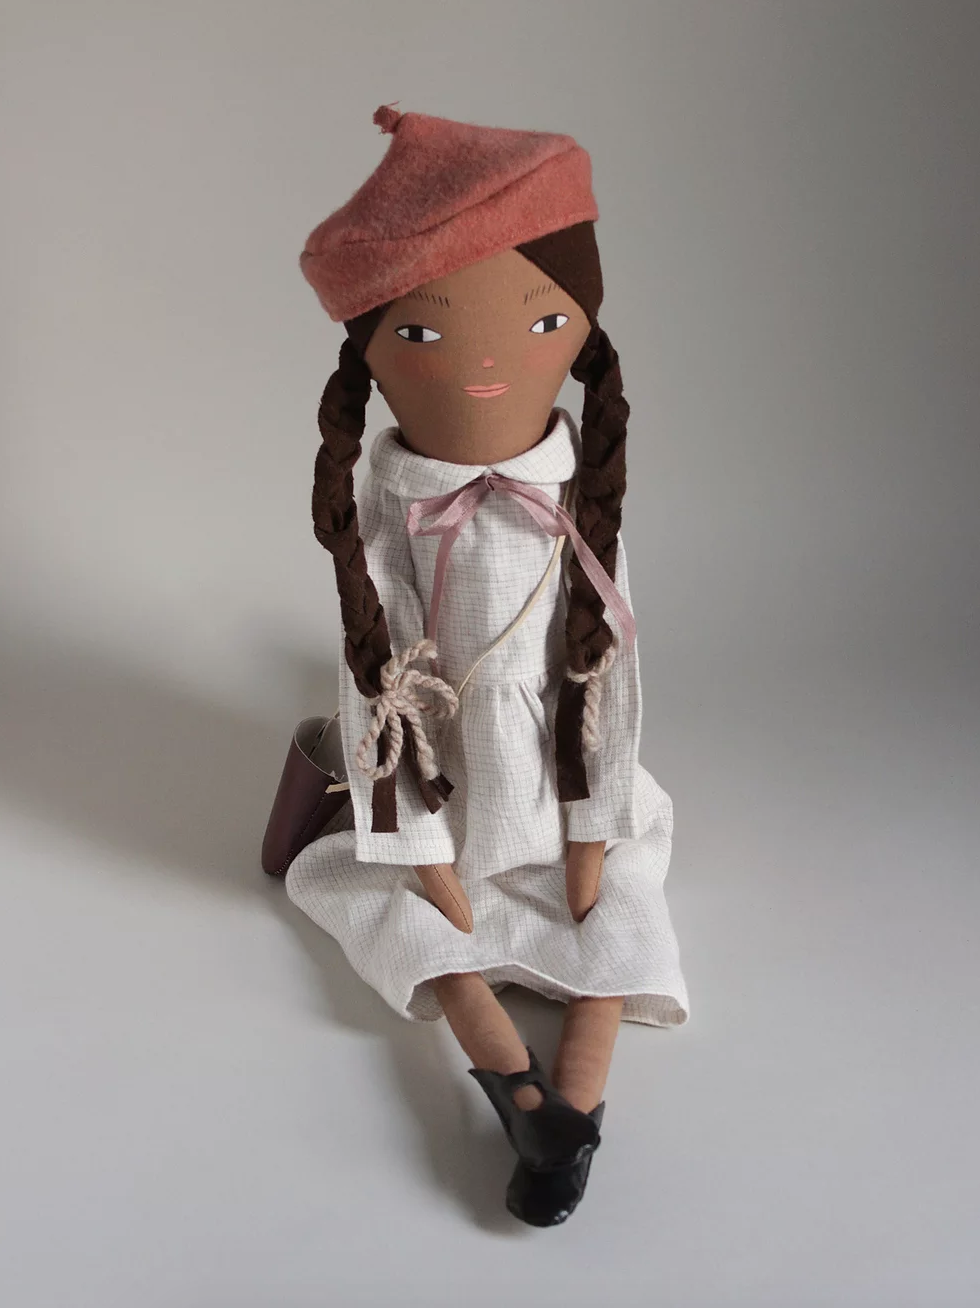 Izzie doll wearing beret from Merrilee Liddiard's shop